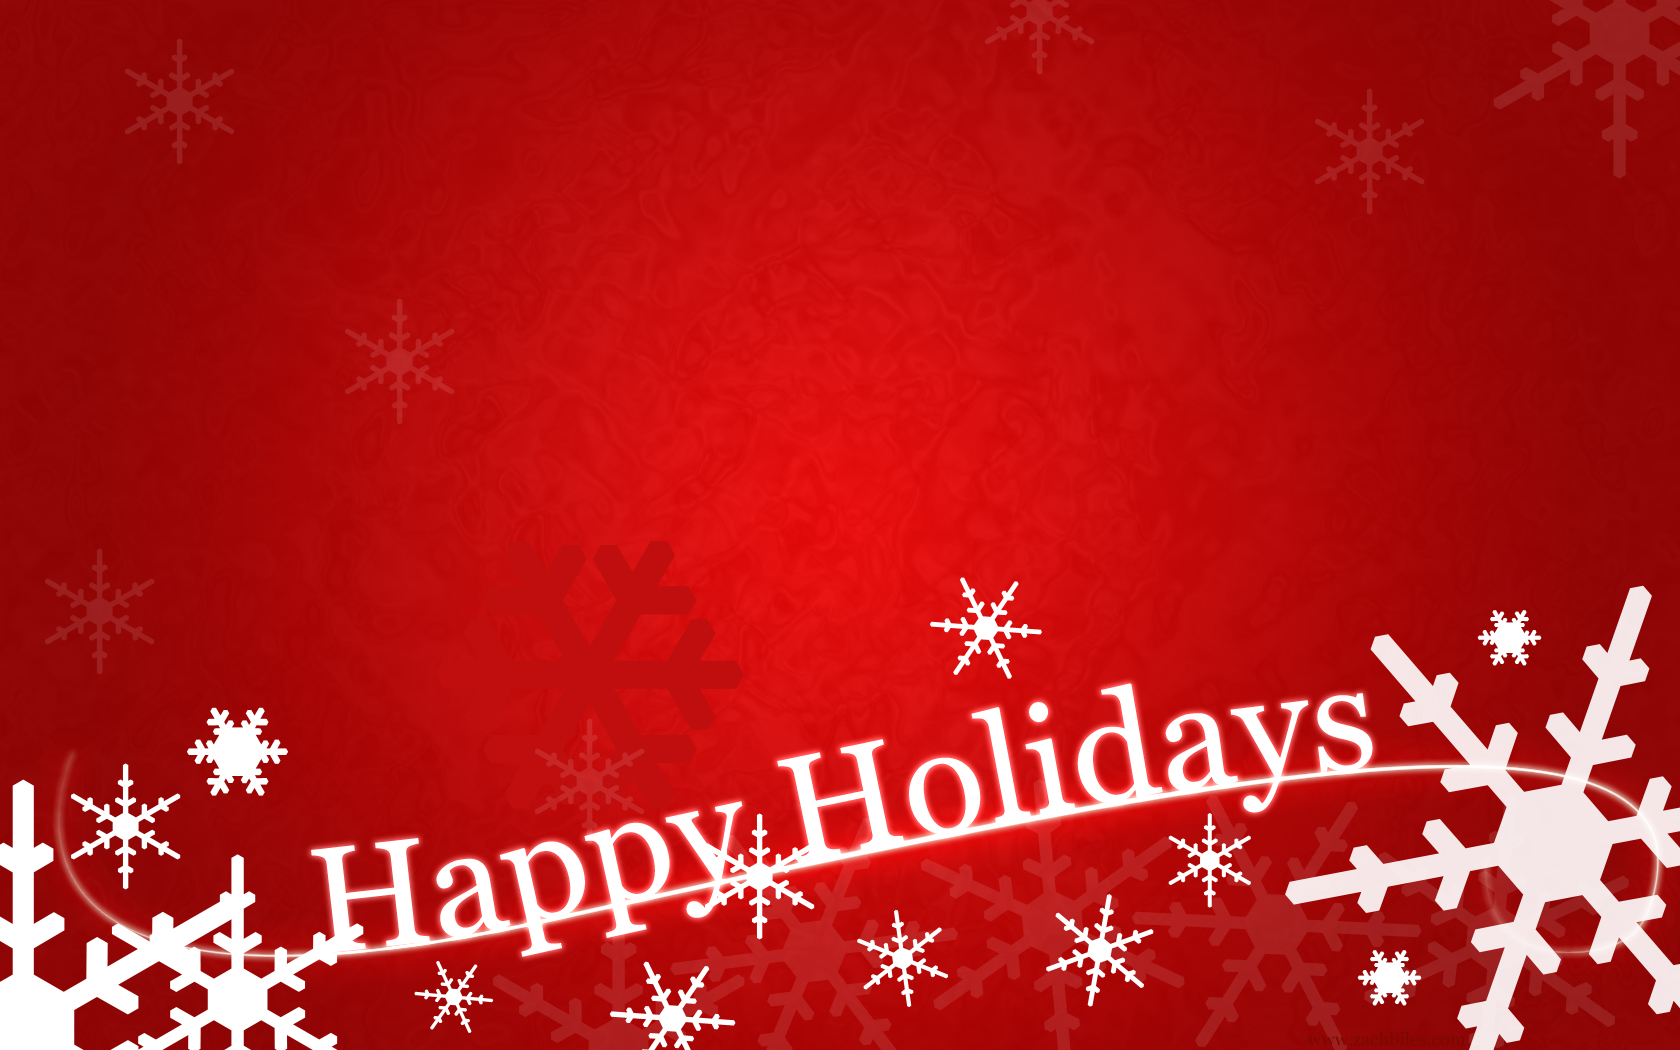 For-You-Happy-Holiday-